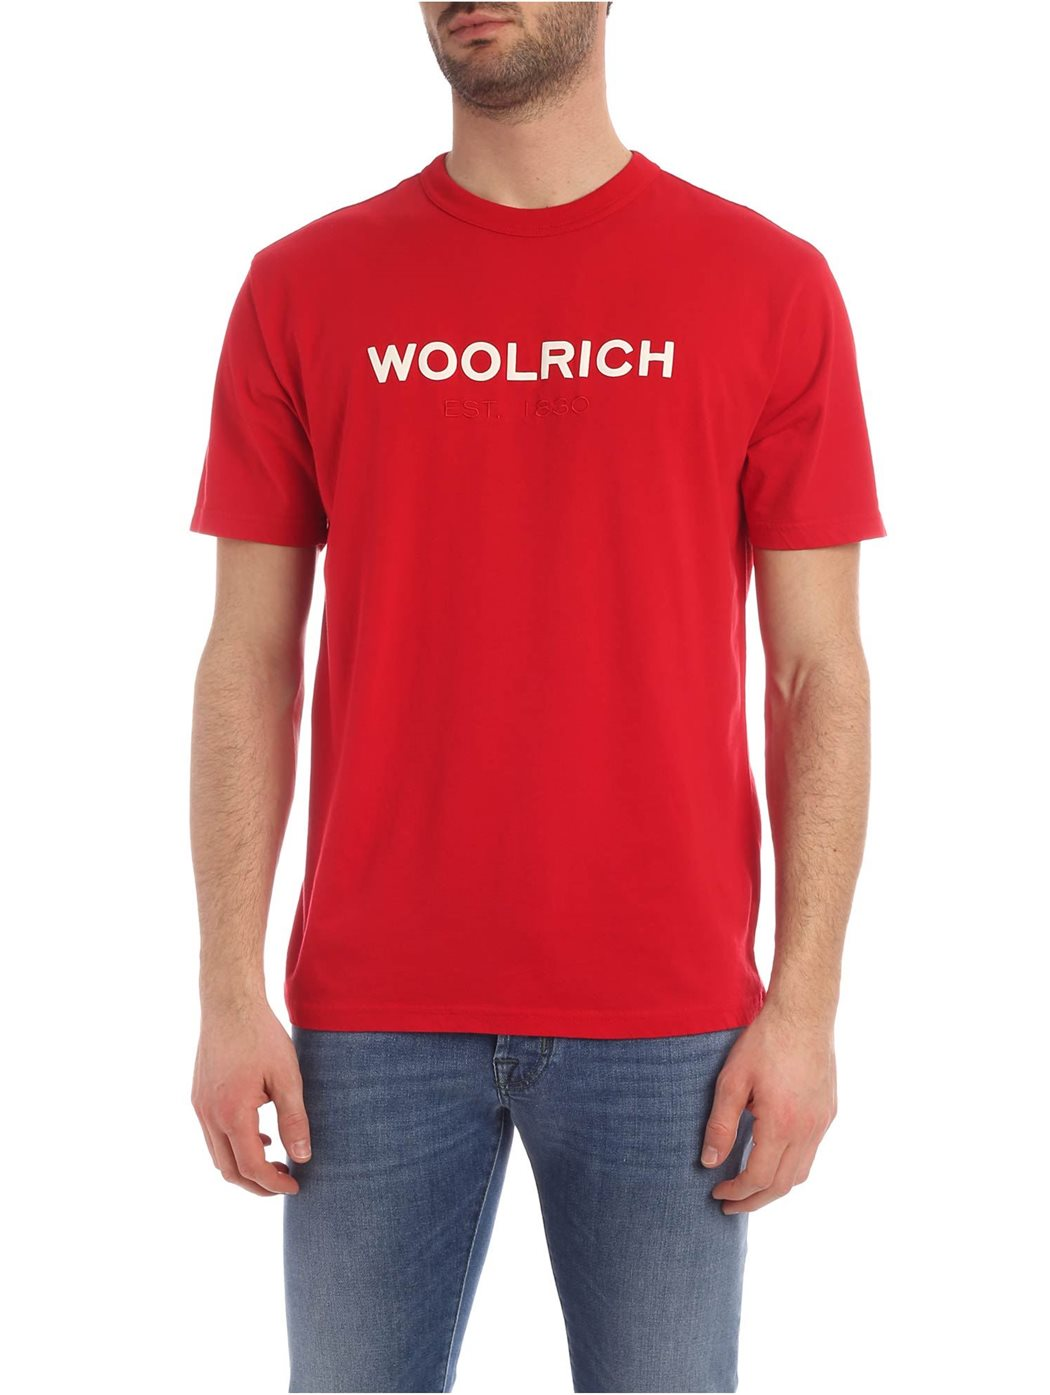 WOOLRICH wote0024mr 5405 T-SHIRT